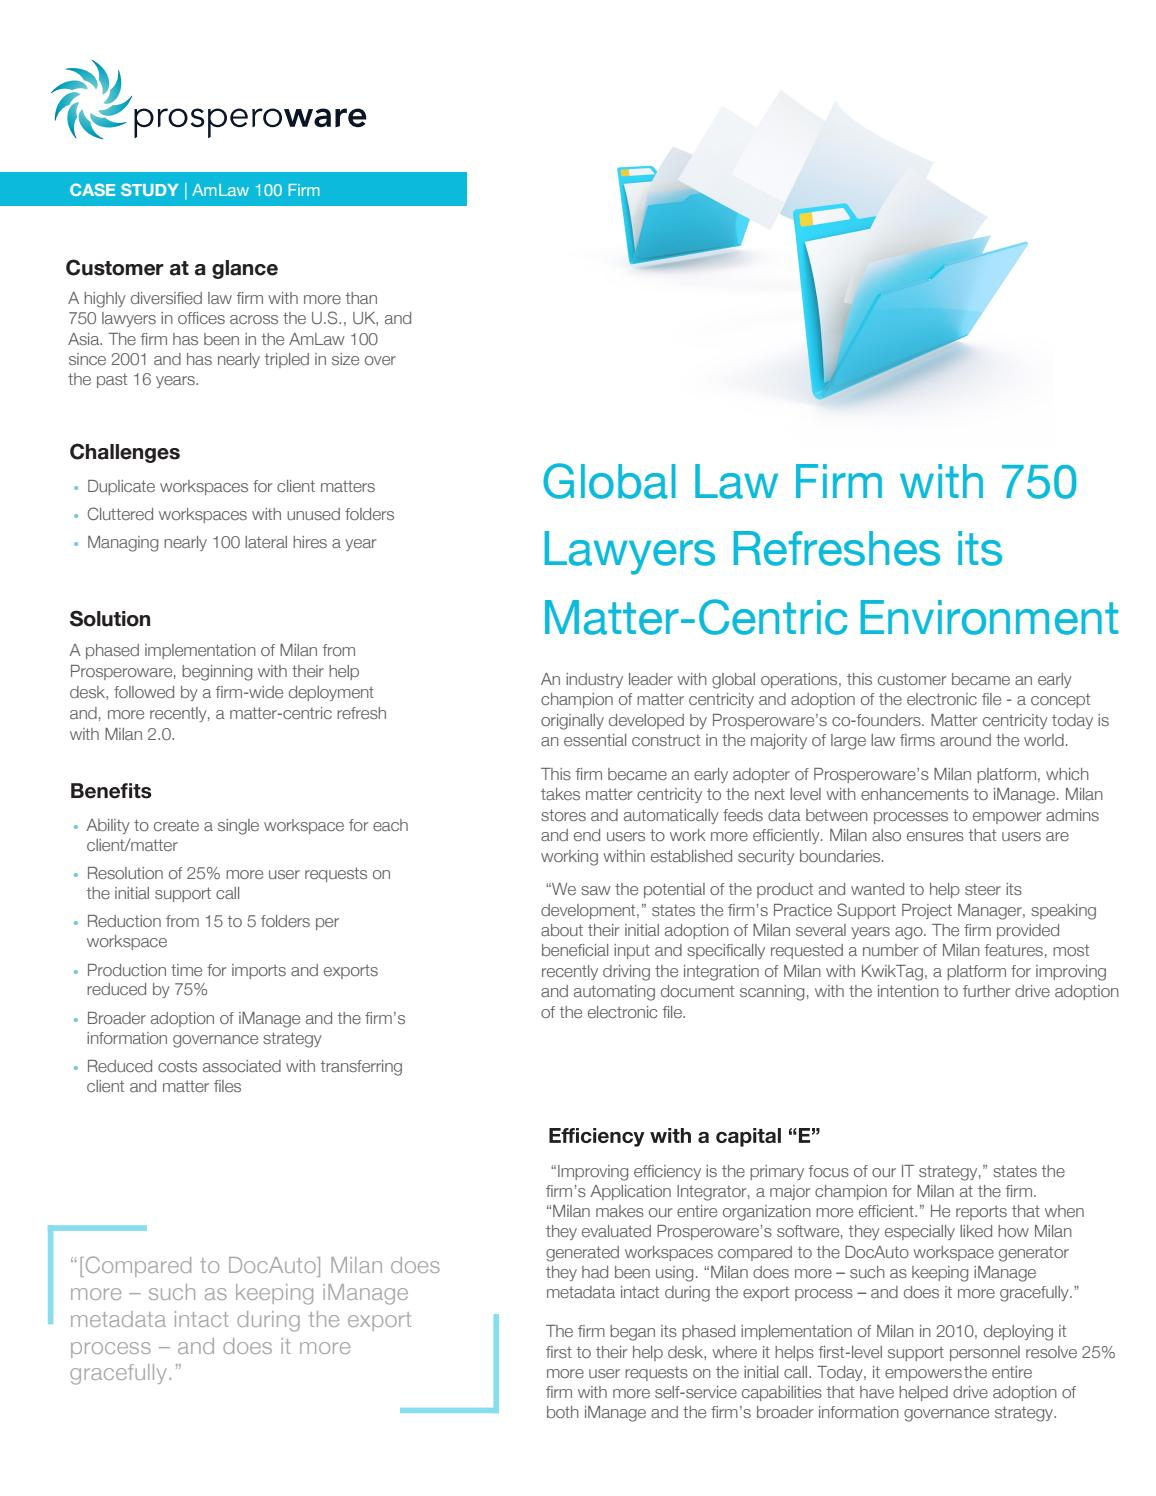 Amlaw Case Study by prosperoware - issuu